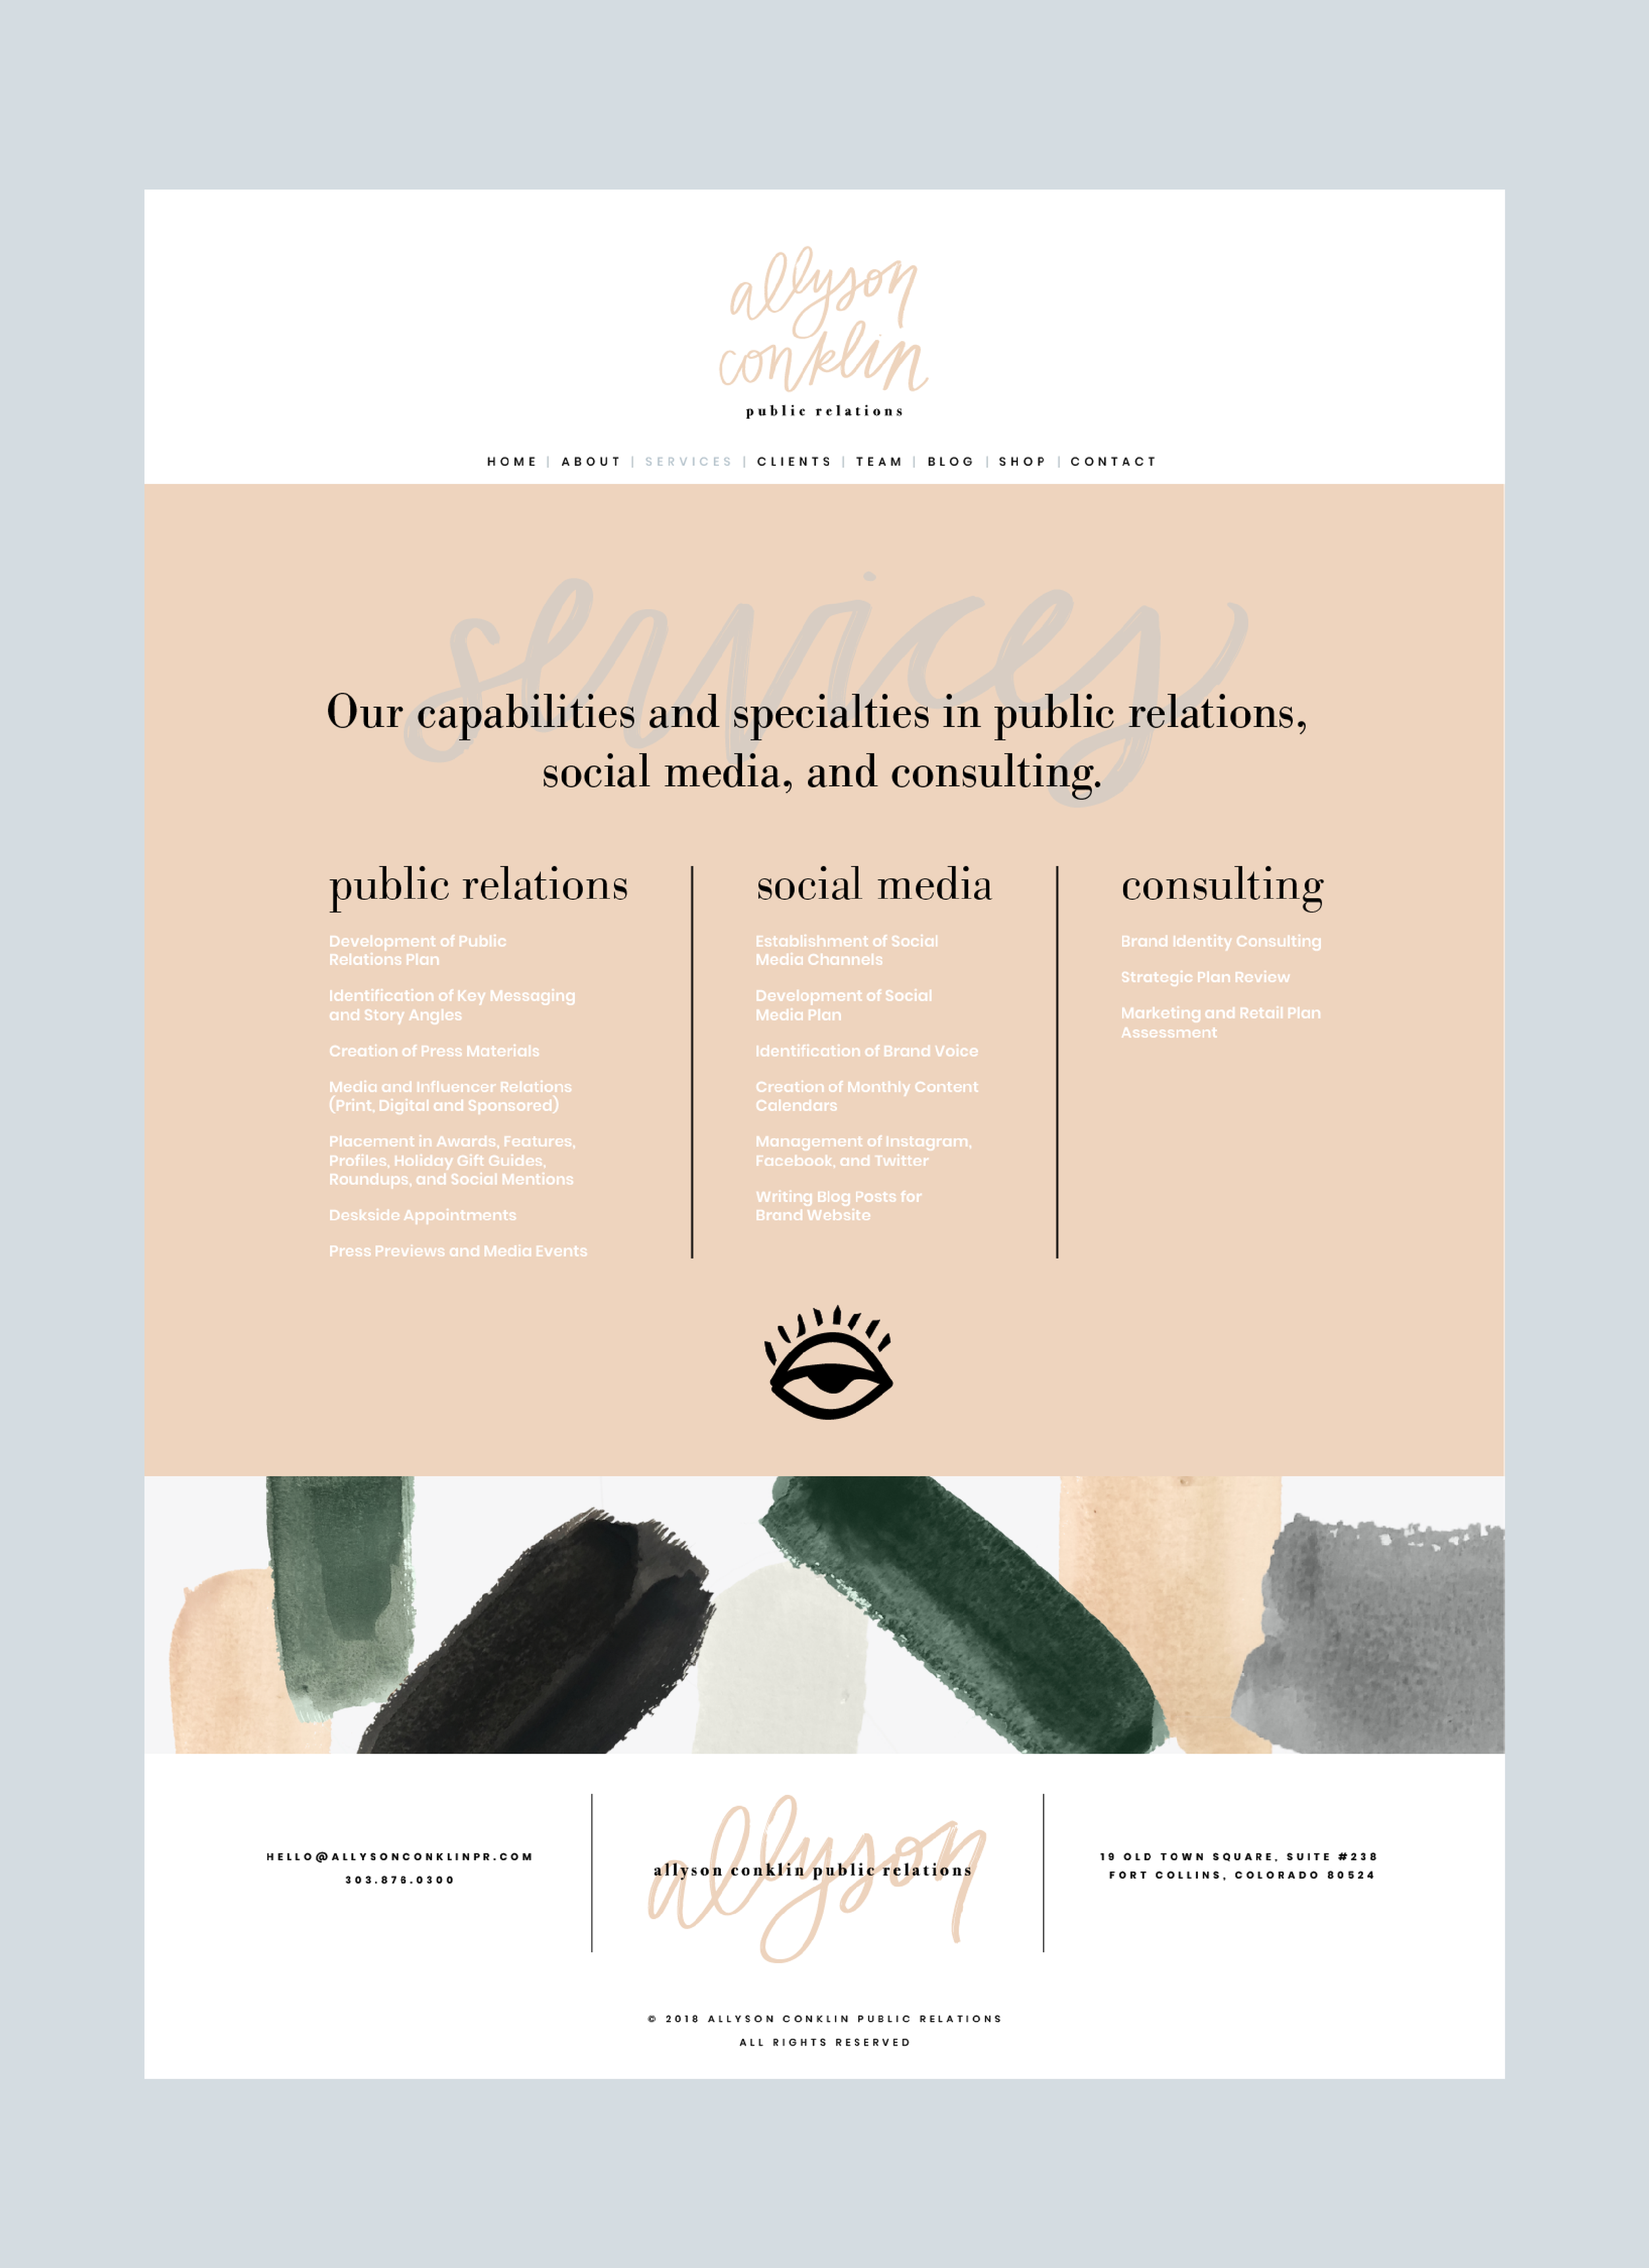 allyson+conklin+public+relations+website+homepage+wordpress+webdesign+paint+pattern+typography+brush+script+serif+sansserif+nude+green+grey+black+site+branding+logo+feminine+hand-lettering+solid+color+eclectic+stylish+sophisticated+services+page